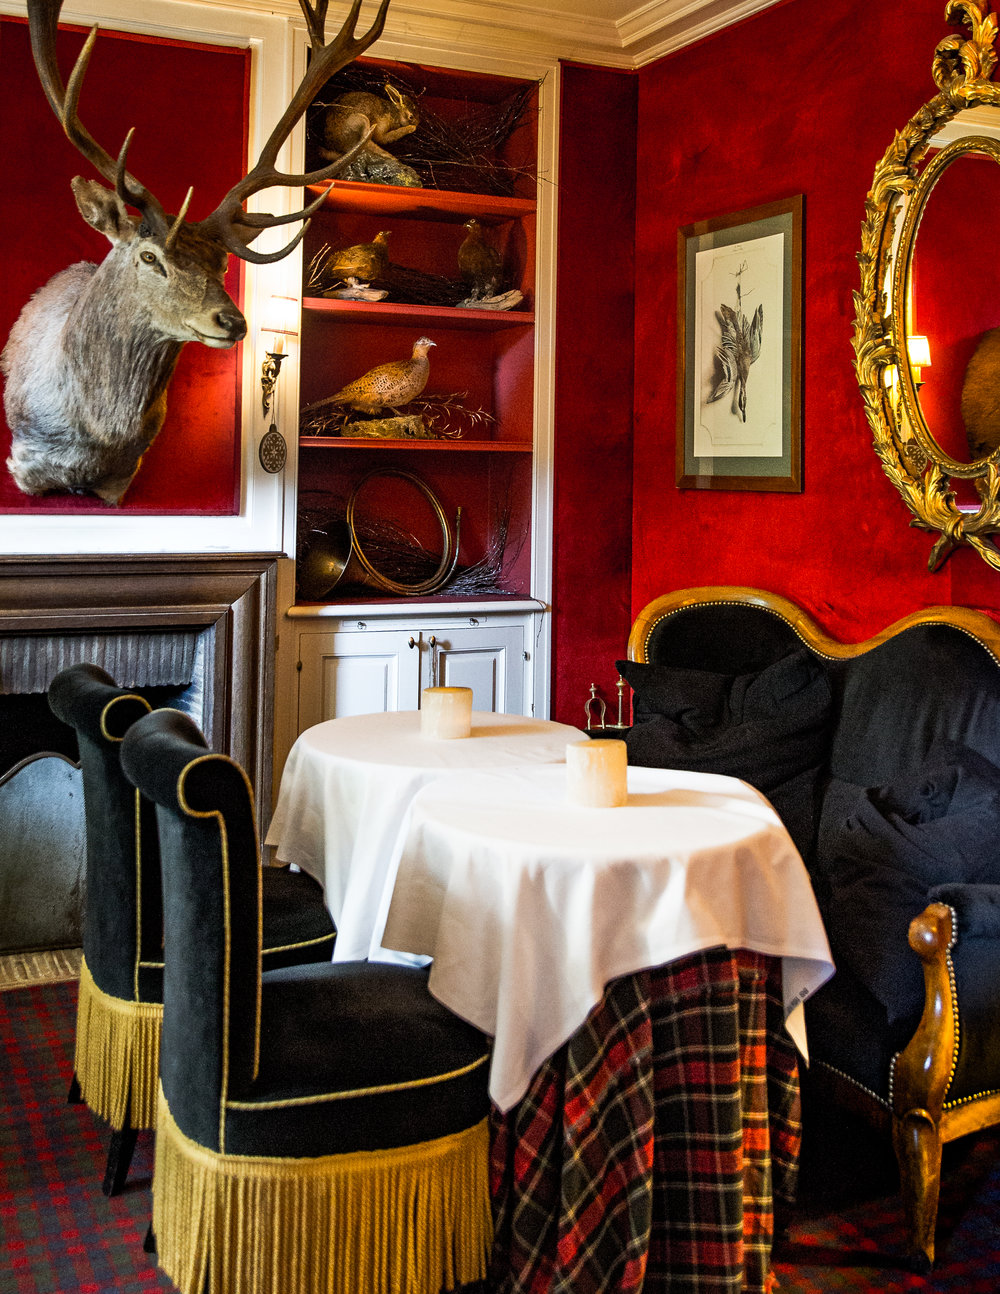 HOTEL PARTICULIER MONTMARTRE   23 Avenue Junot, Pavillon D, 75018   INSIDER TIP  | It only looks like a country inn but the Hotel Particulier is anything but old school. Get cozy over tea and nibbles in this sliver of a salon off of the lobby.